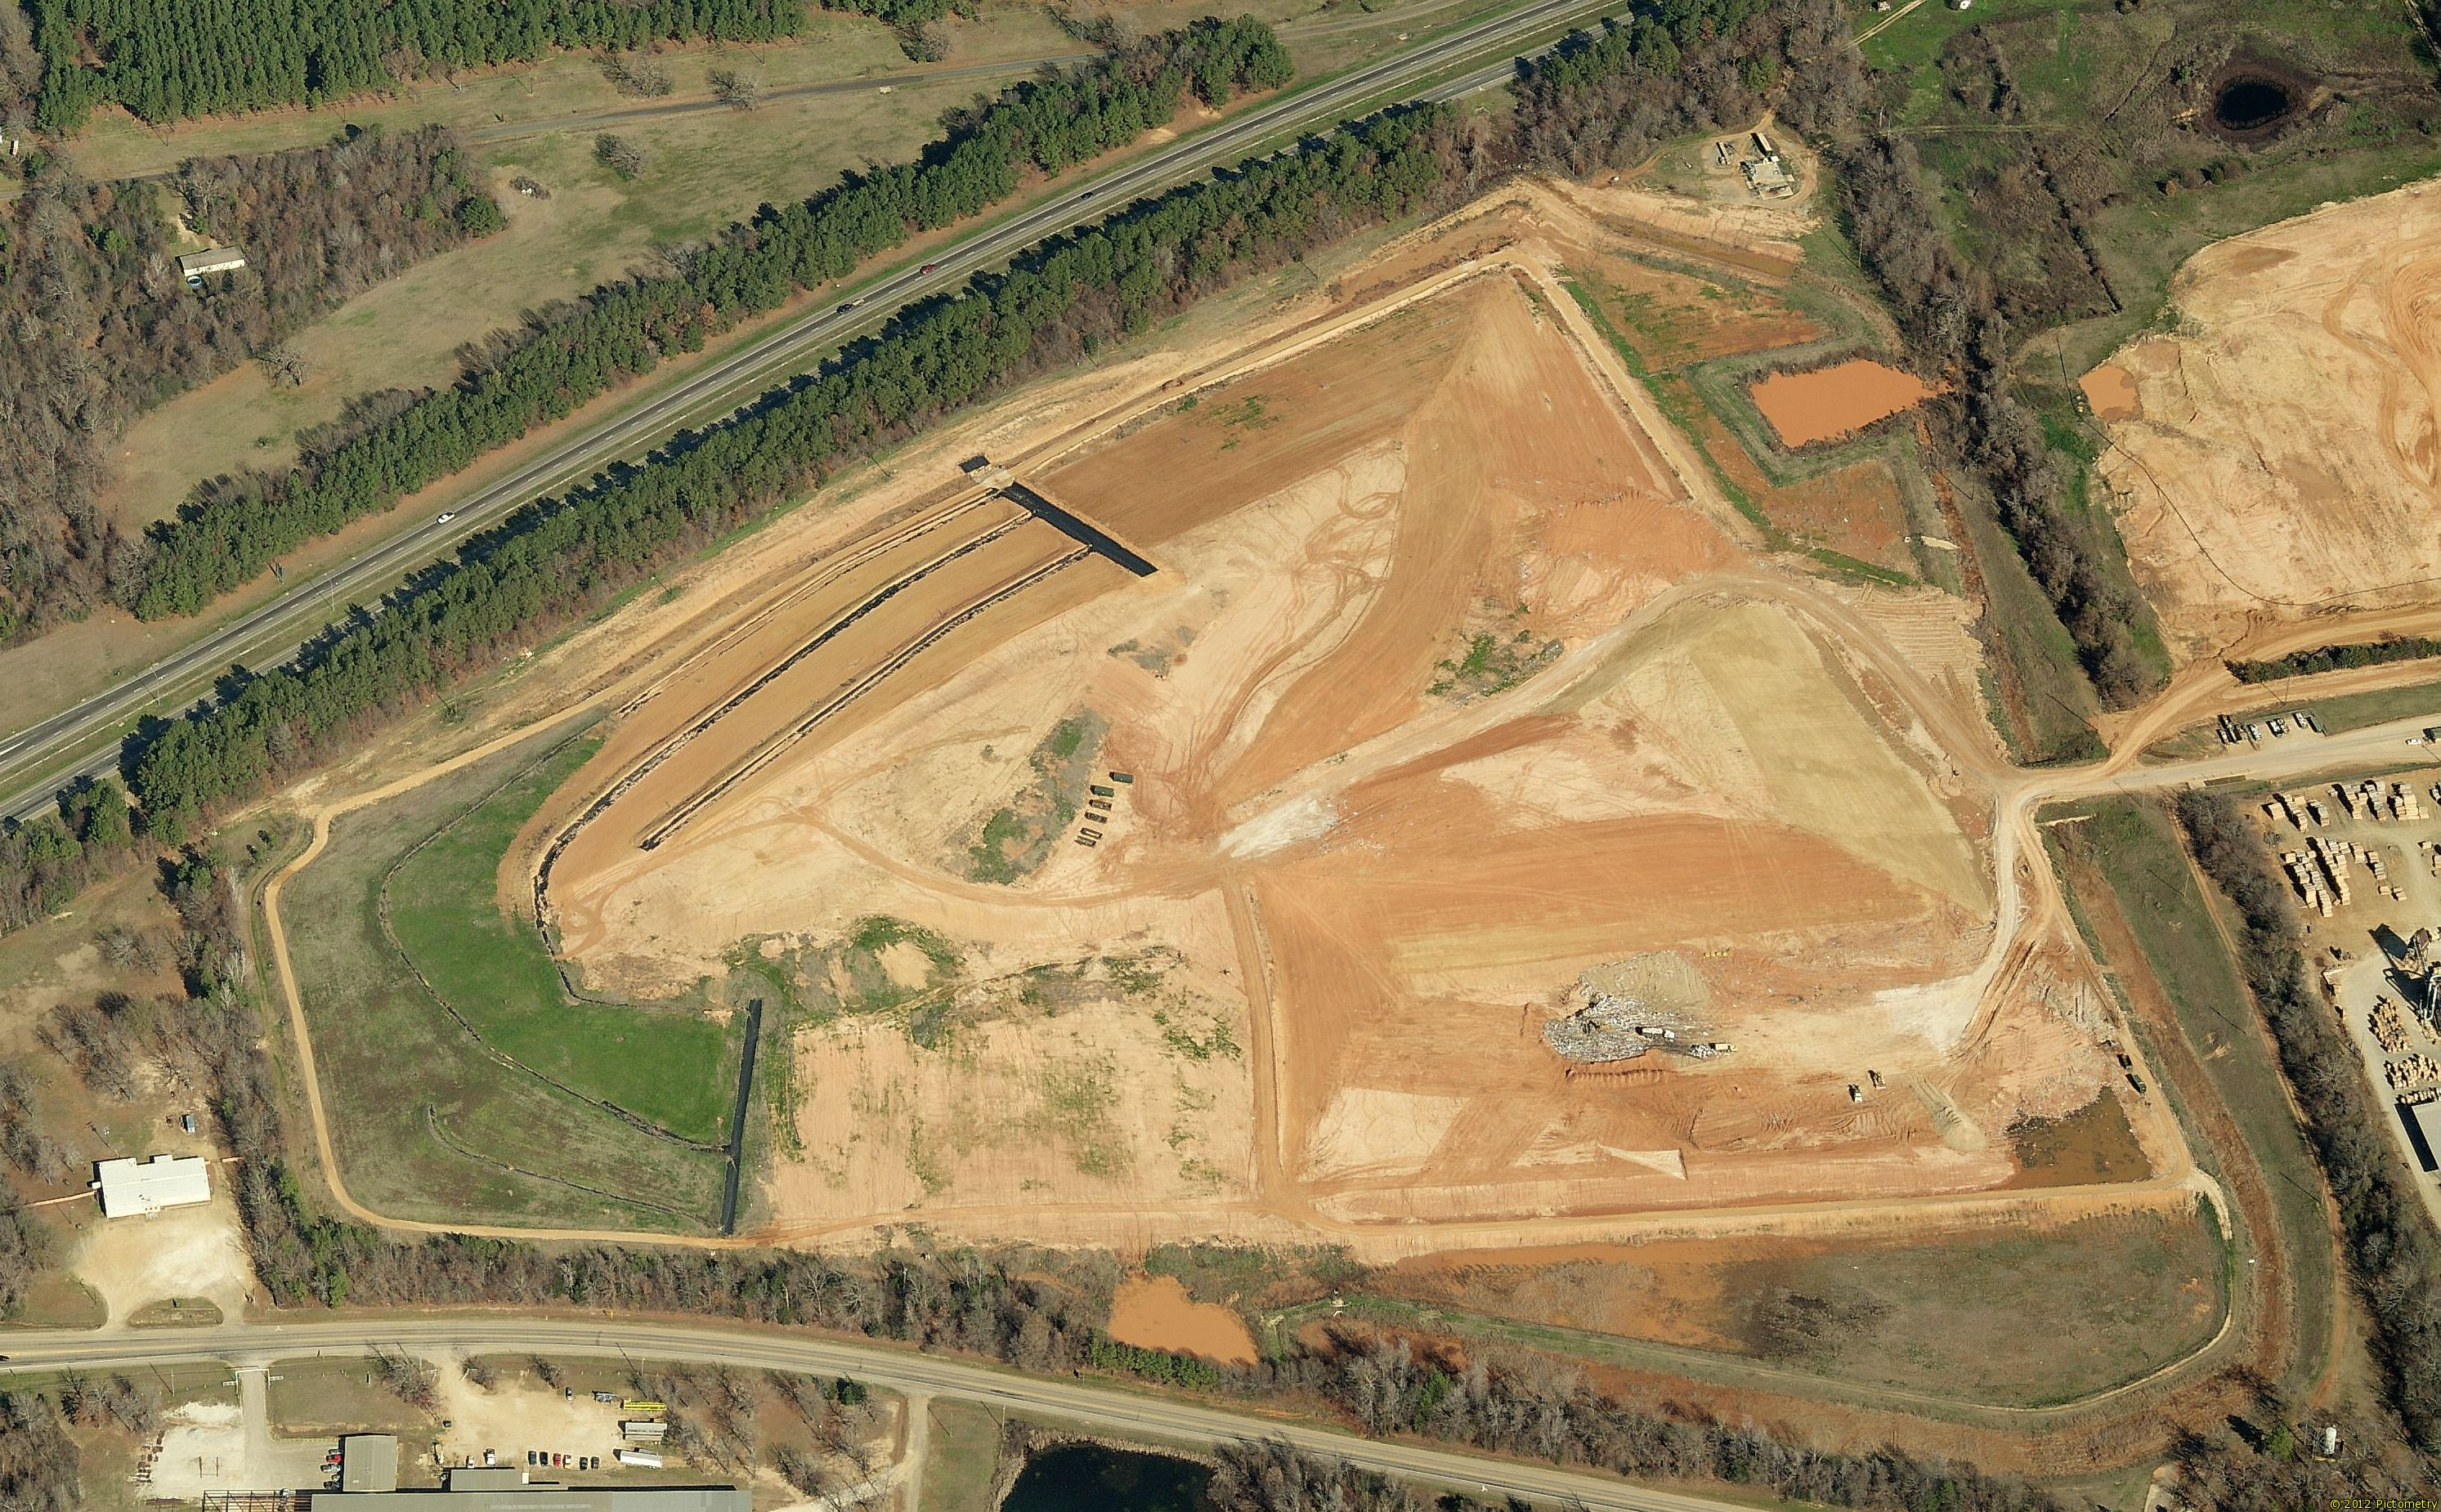 Aerial view of the new landfill